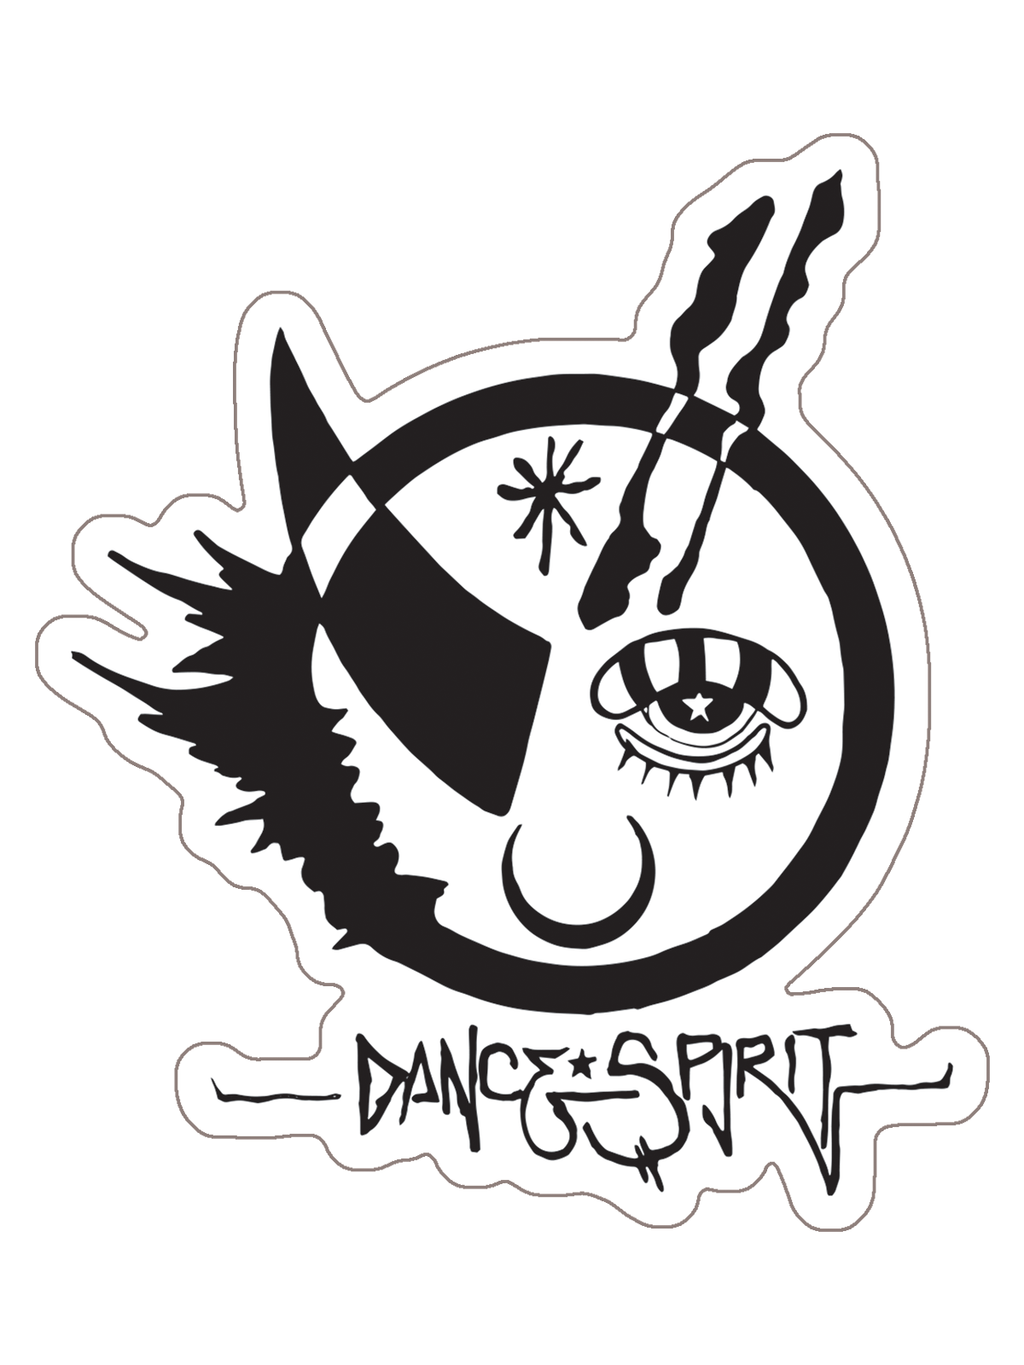 New Dance Spirit sticker designed by Christopher Mohn